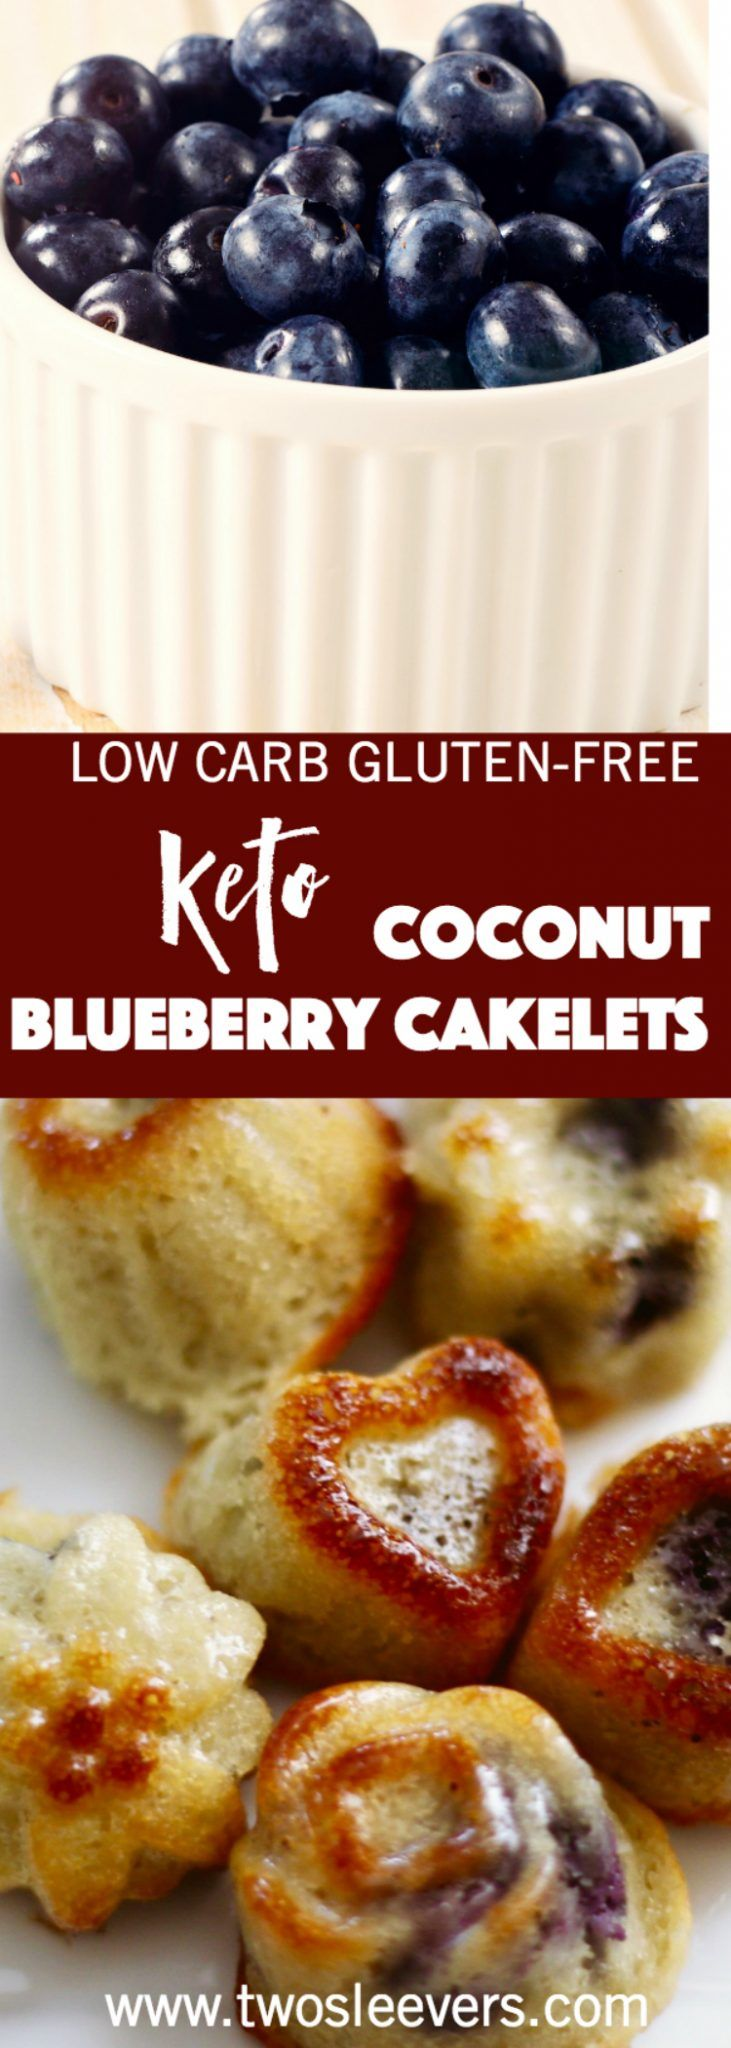 Keto Almond Coconut Blueberry Cakelets, Keto Almond Coconut Blueberry cakelets are gluten-free and low carb, but full of real cake flavor. Whip up a batch in just a few minutes.  Two Sleevers